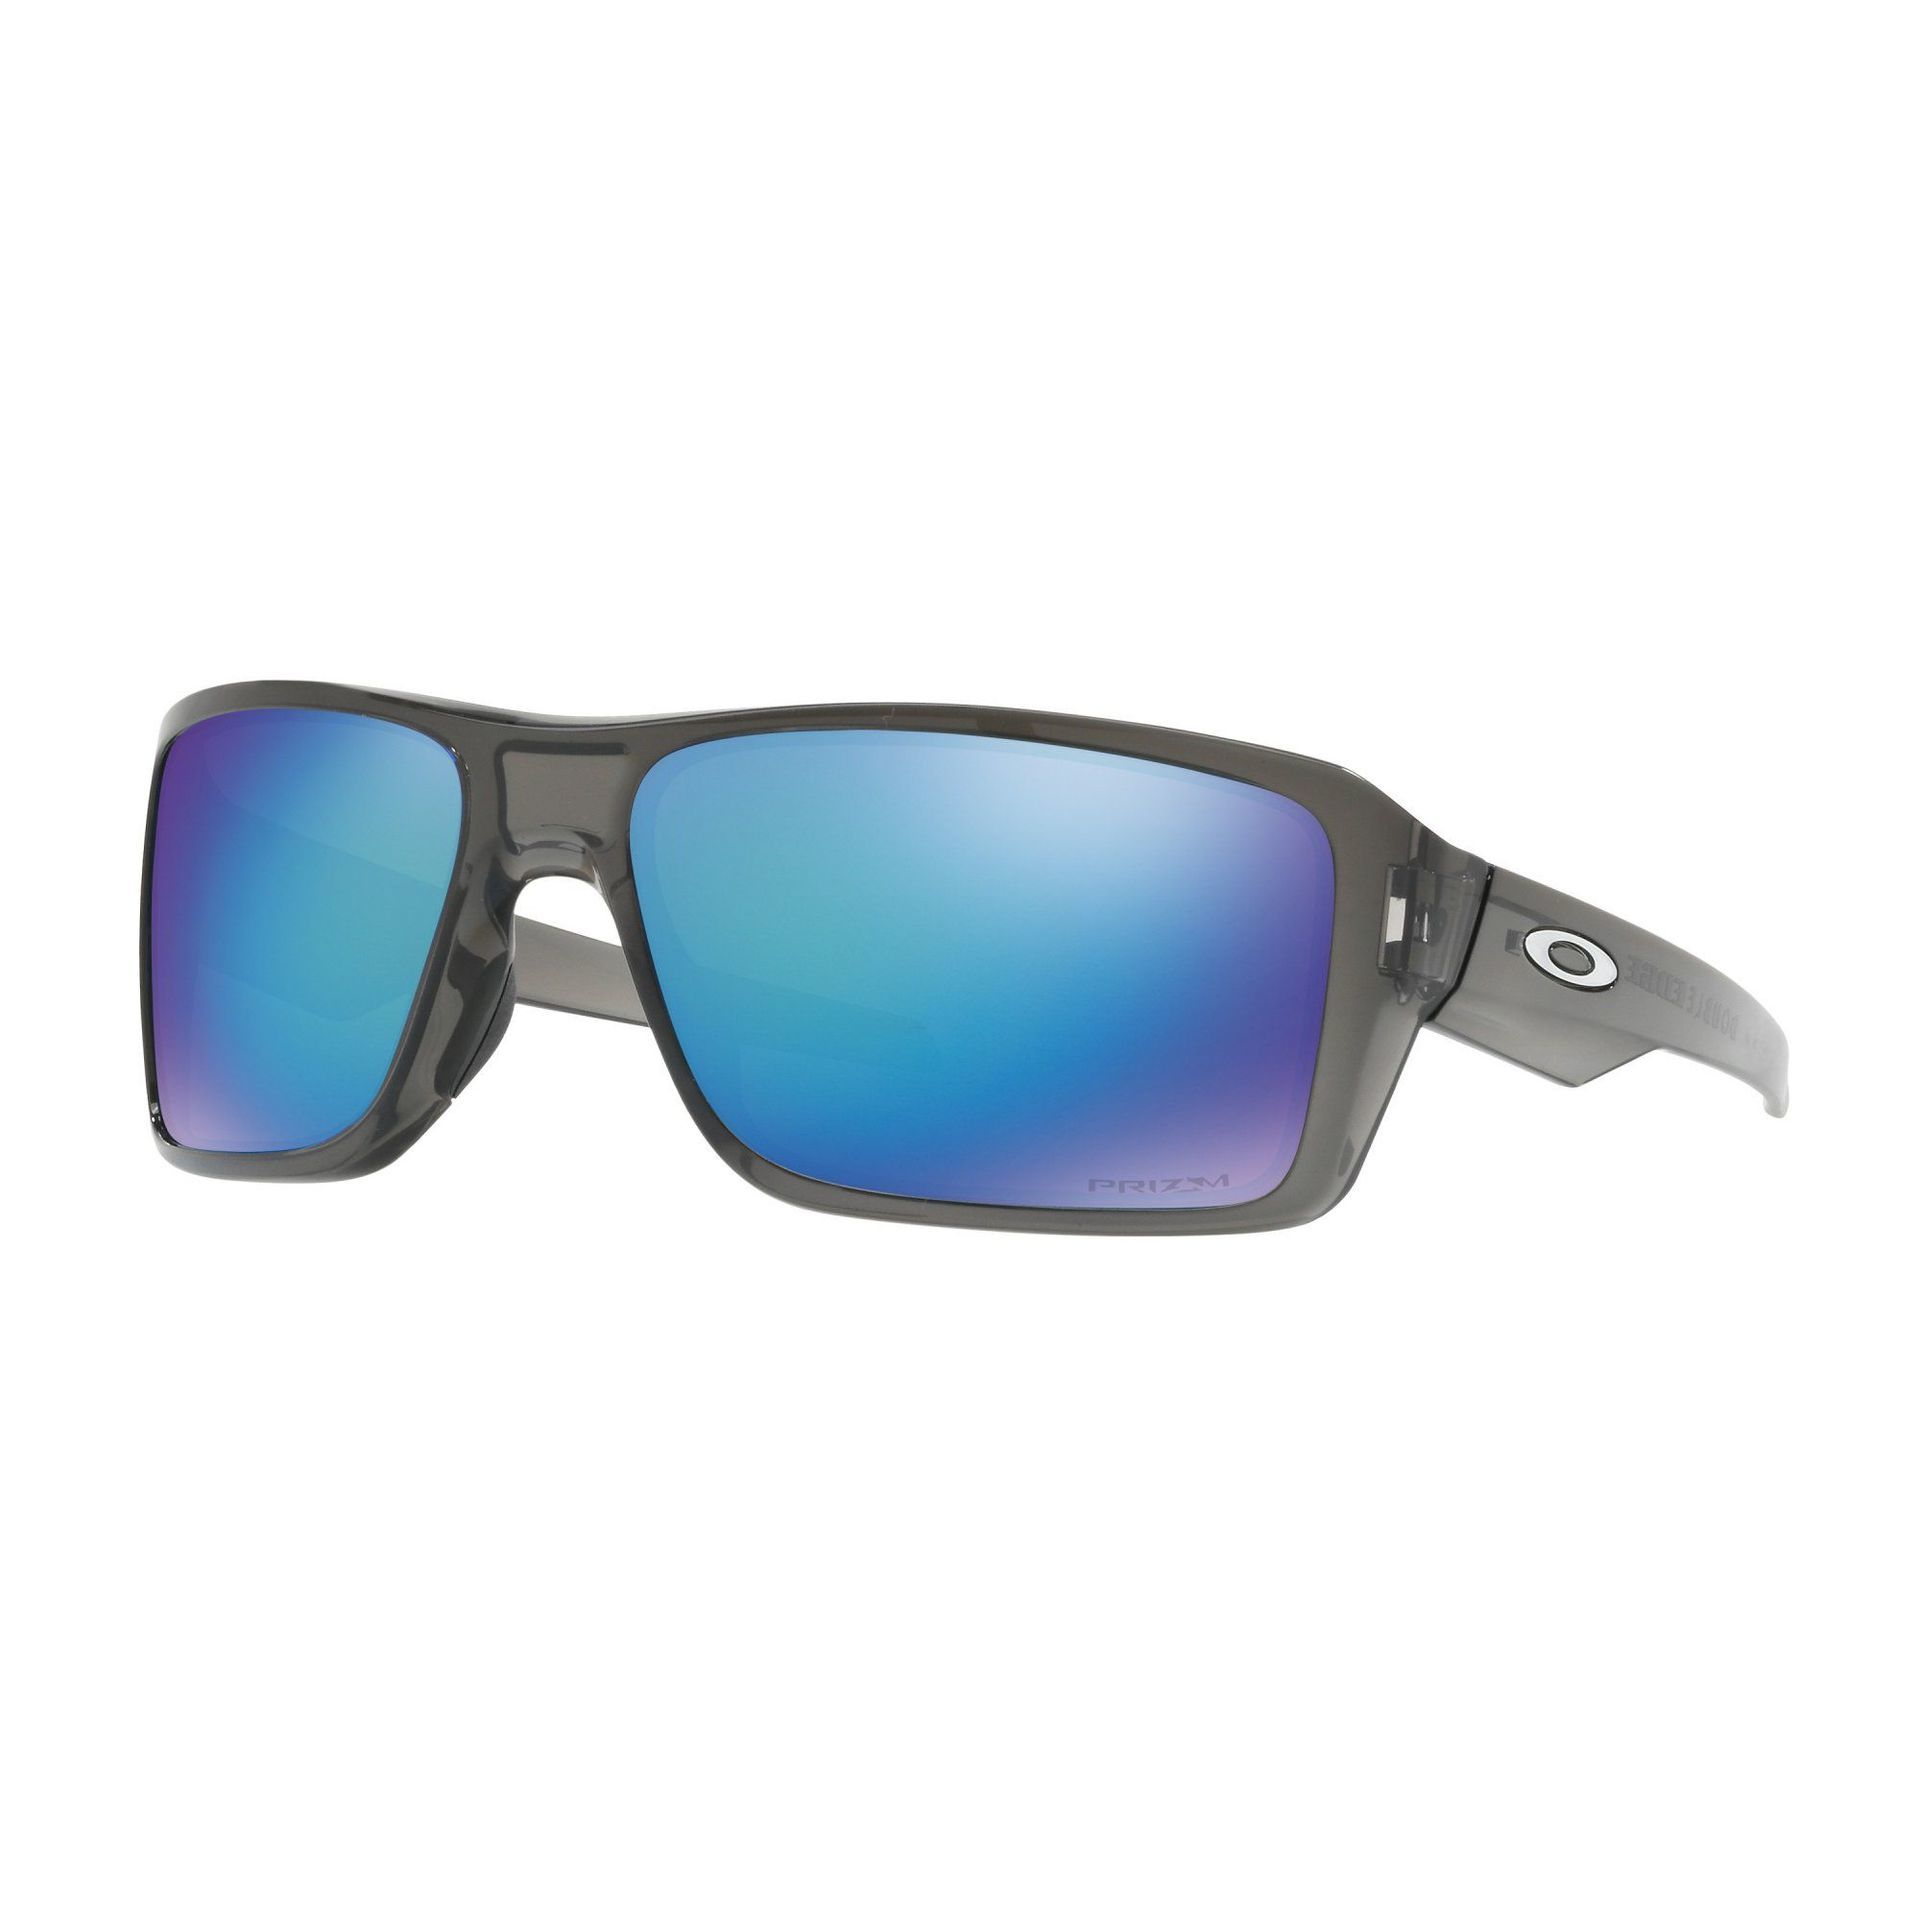 OKULARY OAKLEY DOUBLE EDGE GRAY SMOKE|PRIZM SAPPHIRE POLARIZED